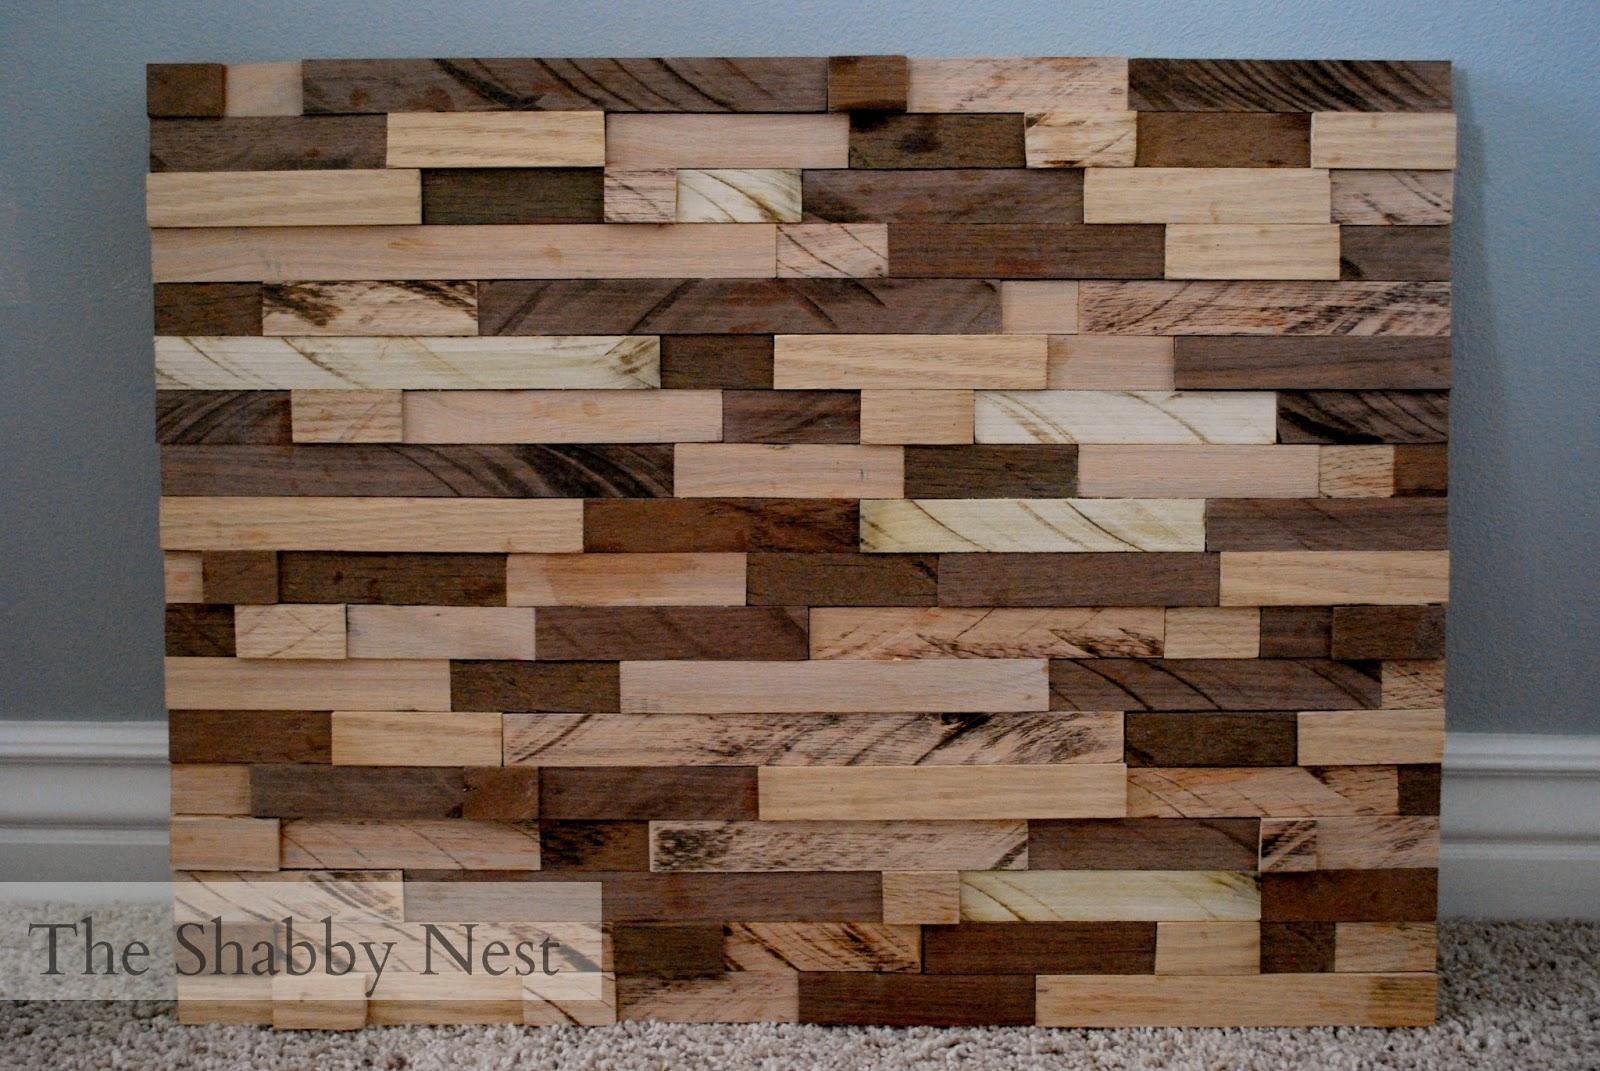 The Shabby Nest: January 2013 Intended For Talking Dead Wood Wall Art (Image 8 of 20)